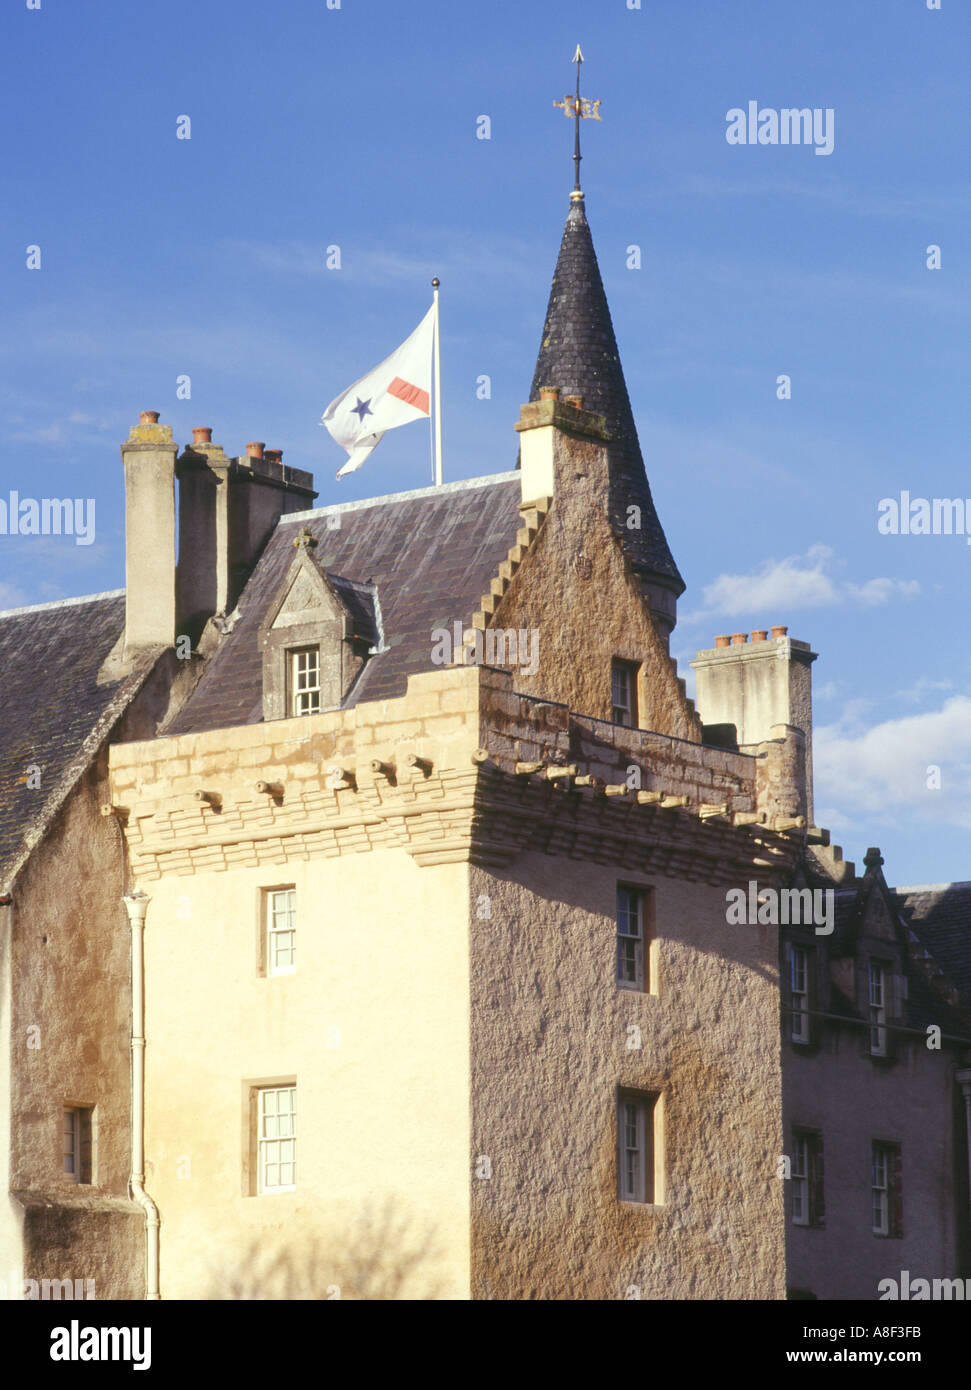 dh  BRODIE CASTLE MORAY Scottish Tower house castle with family clan  flag scotland highland Stock Photo